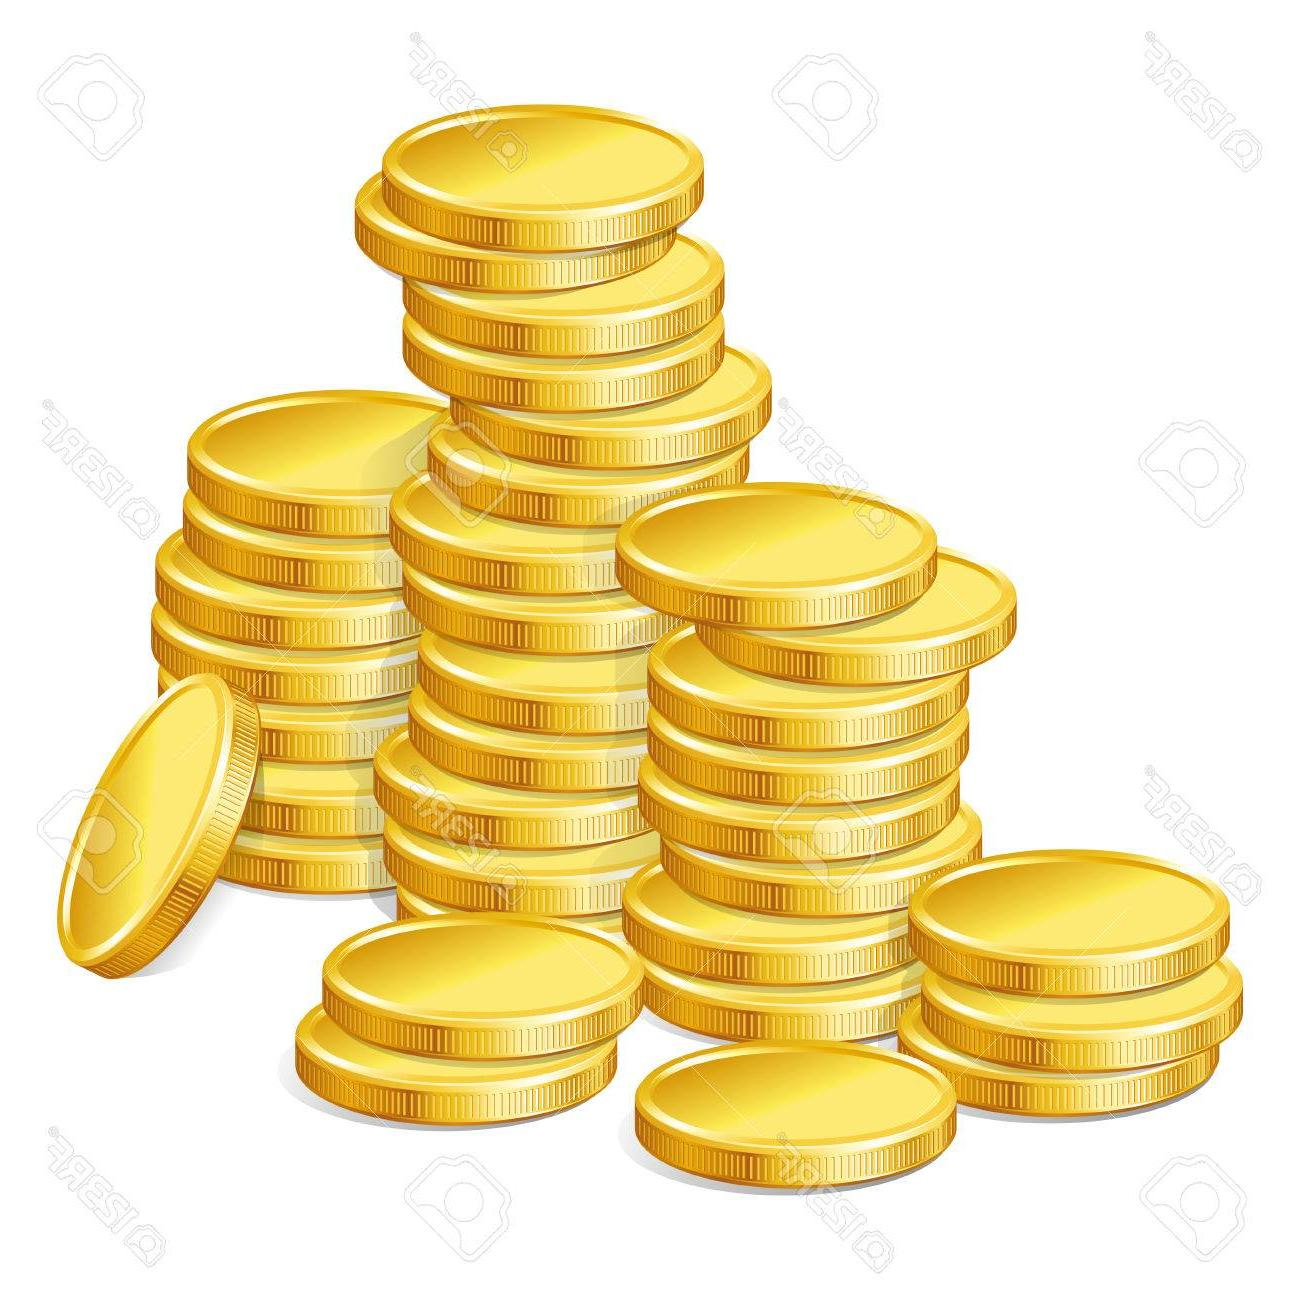 Vector gold coins clipart vector free Best HD Stack Of Gold Coins Clipart Vector Photos » Free ... vector free